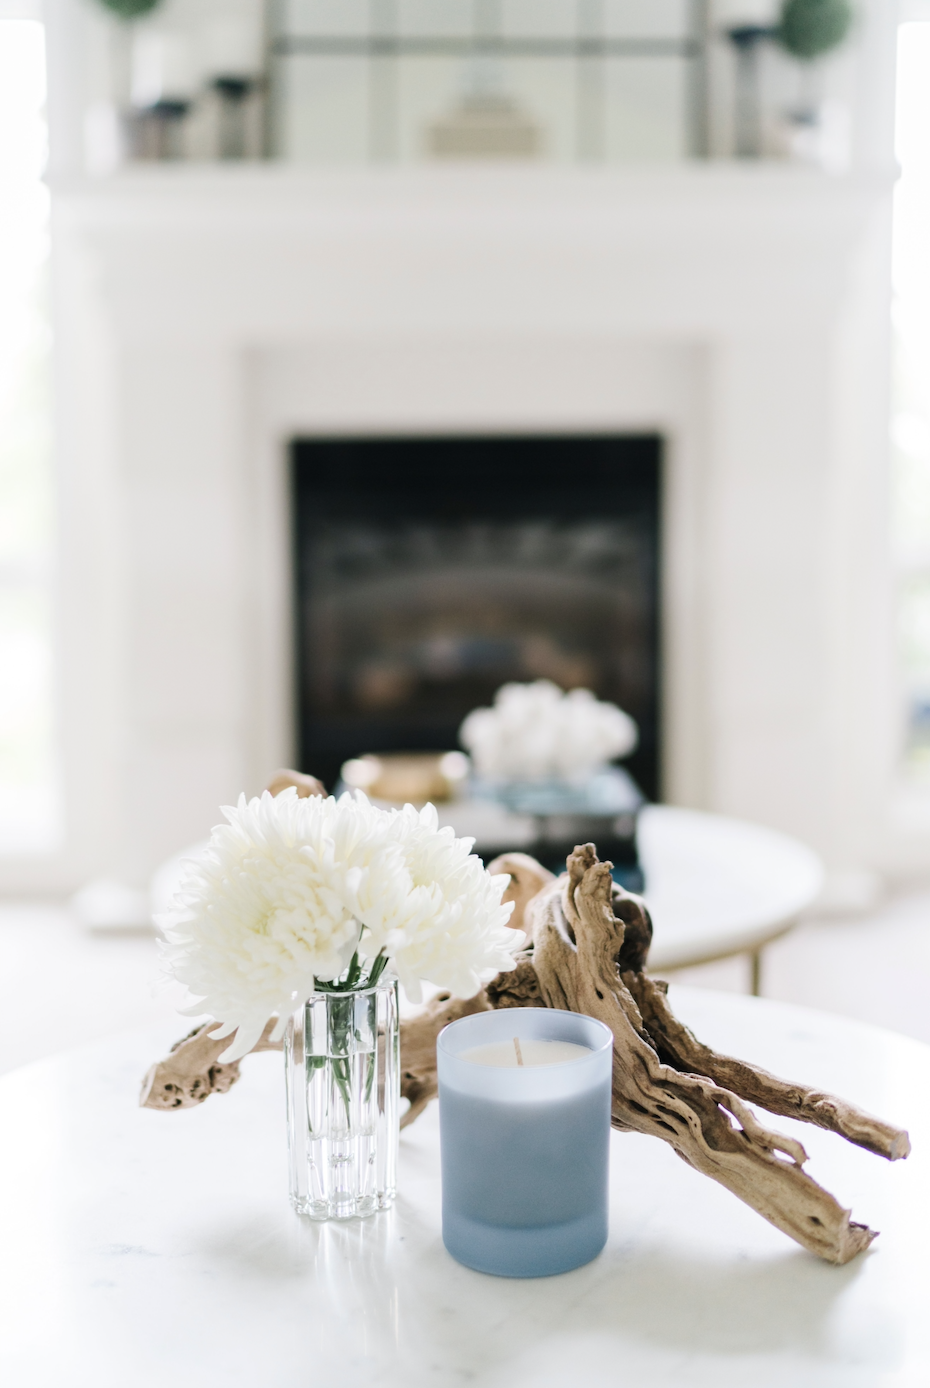 vignette candle flowers driftwood fireplace light blue white calgary marble table